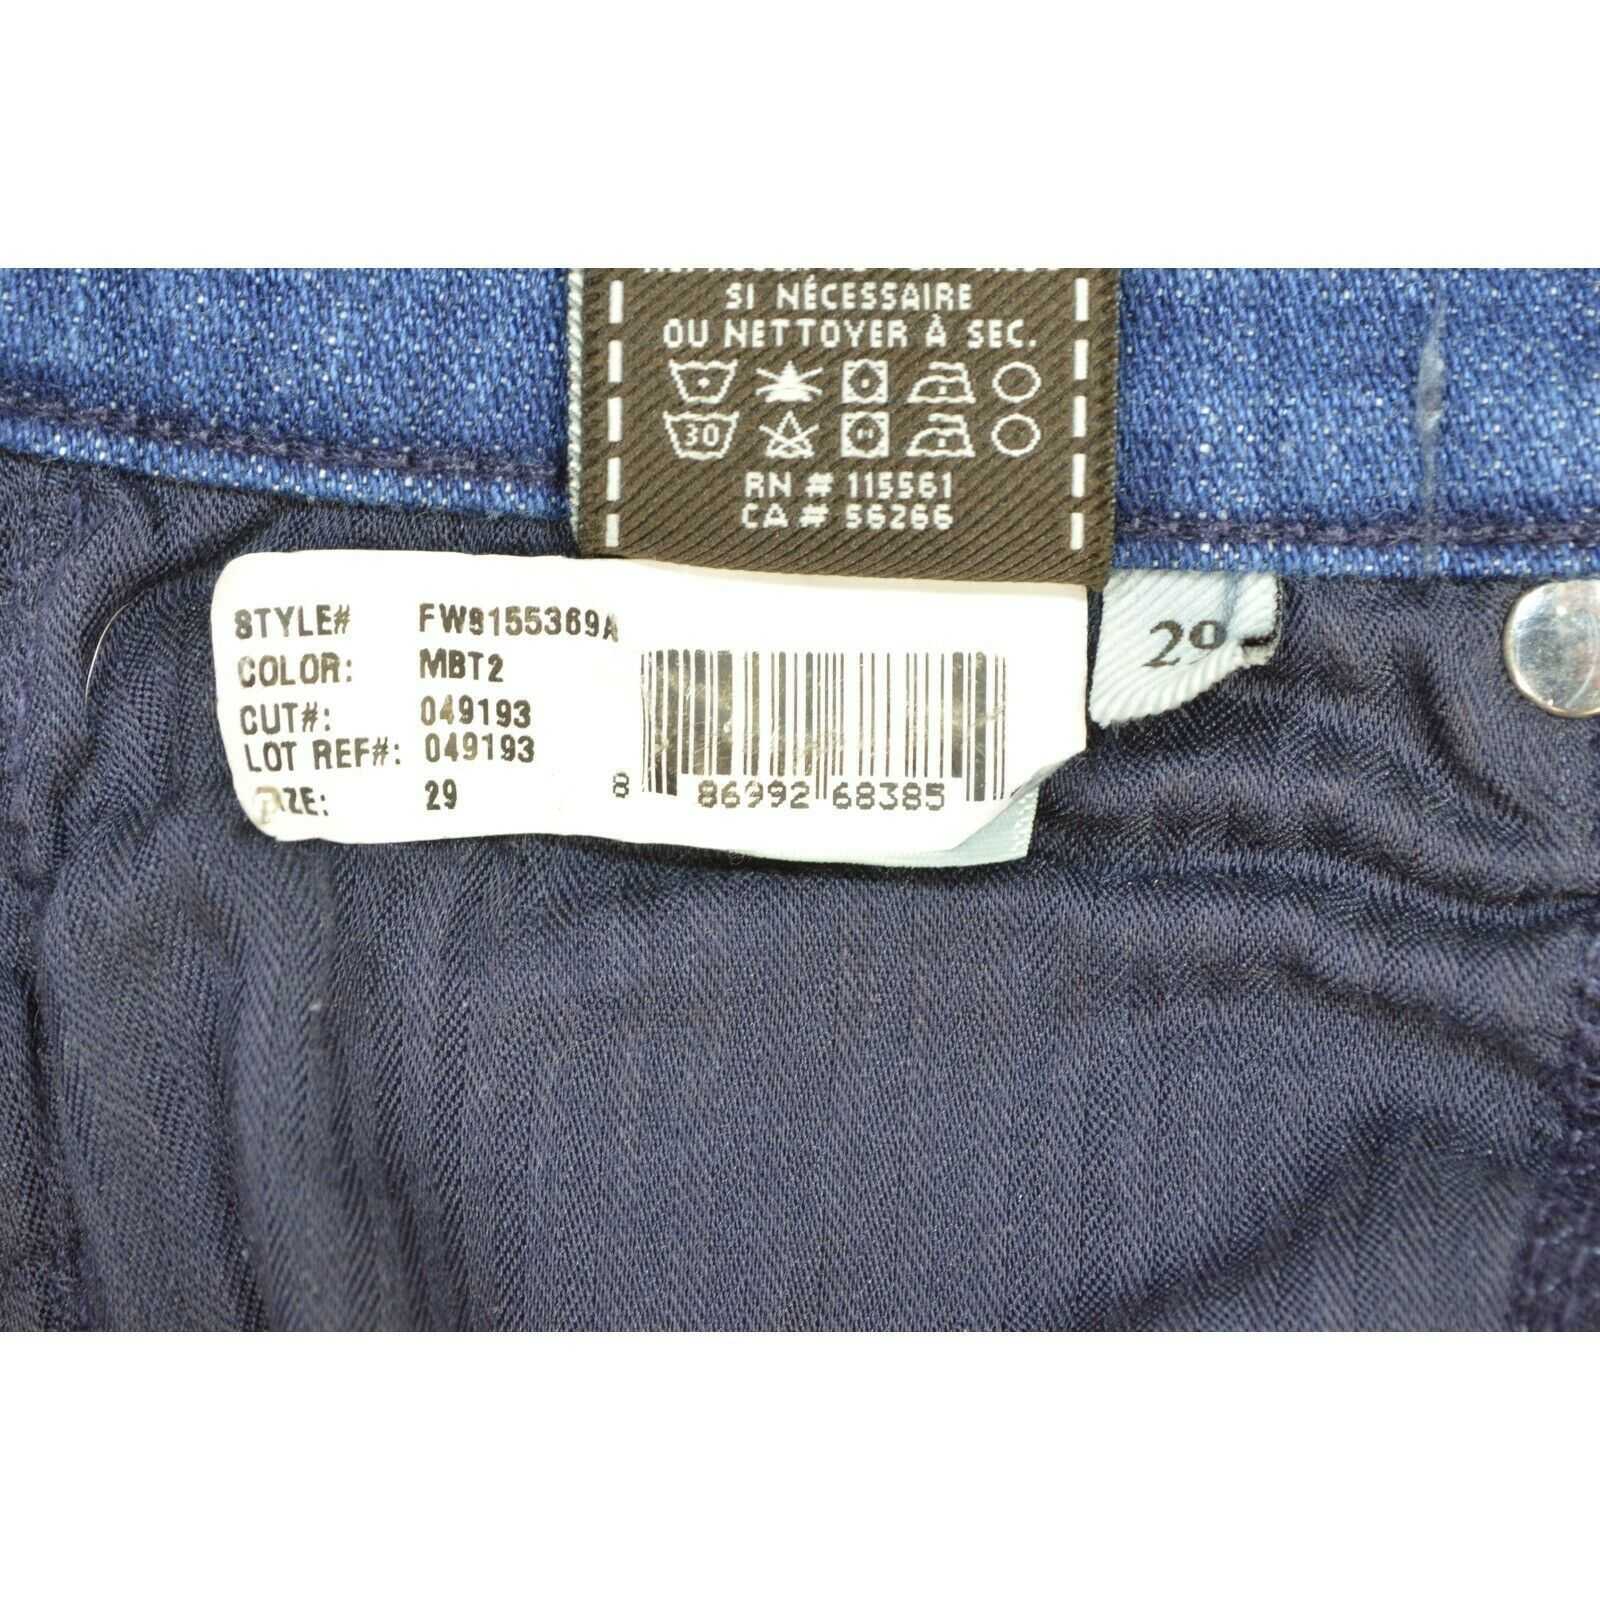 7 For All Mankind jeans cropped 29 x 24 NWT raw hem USA image 12